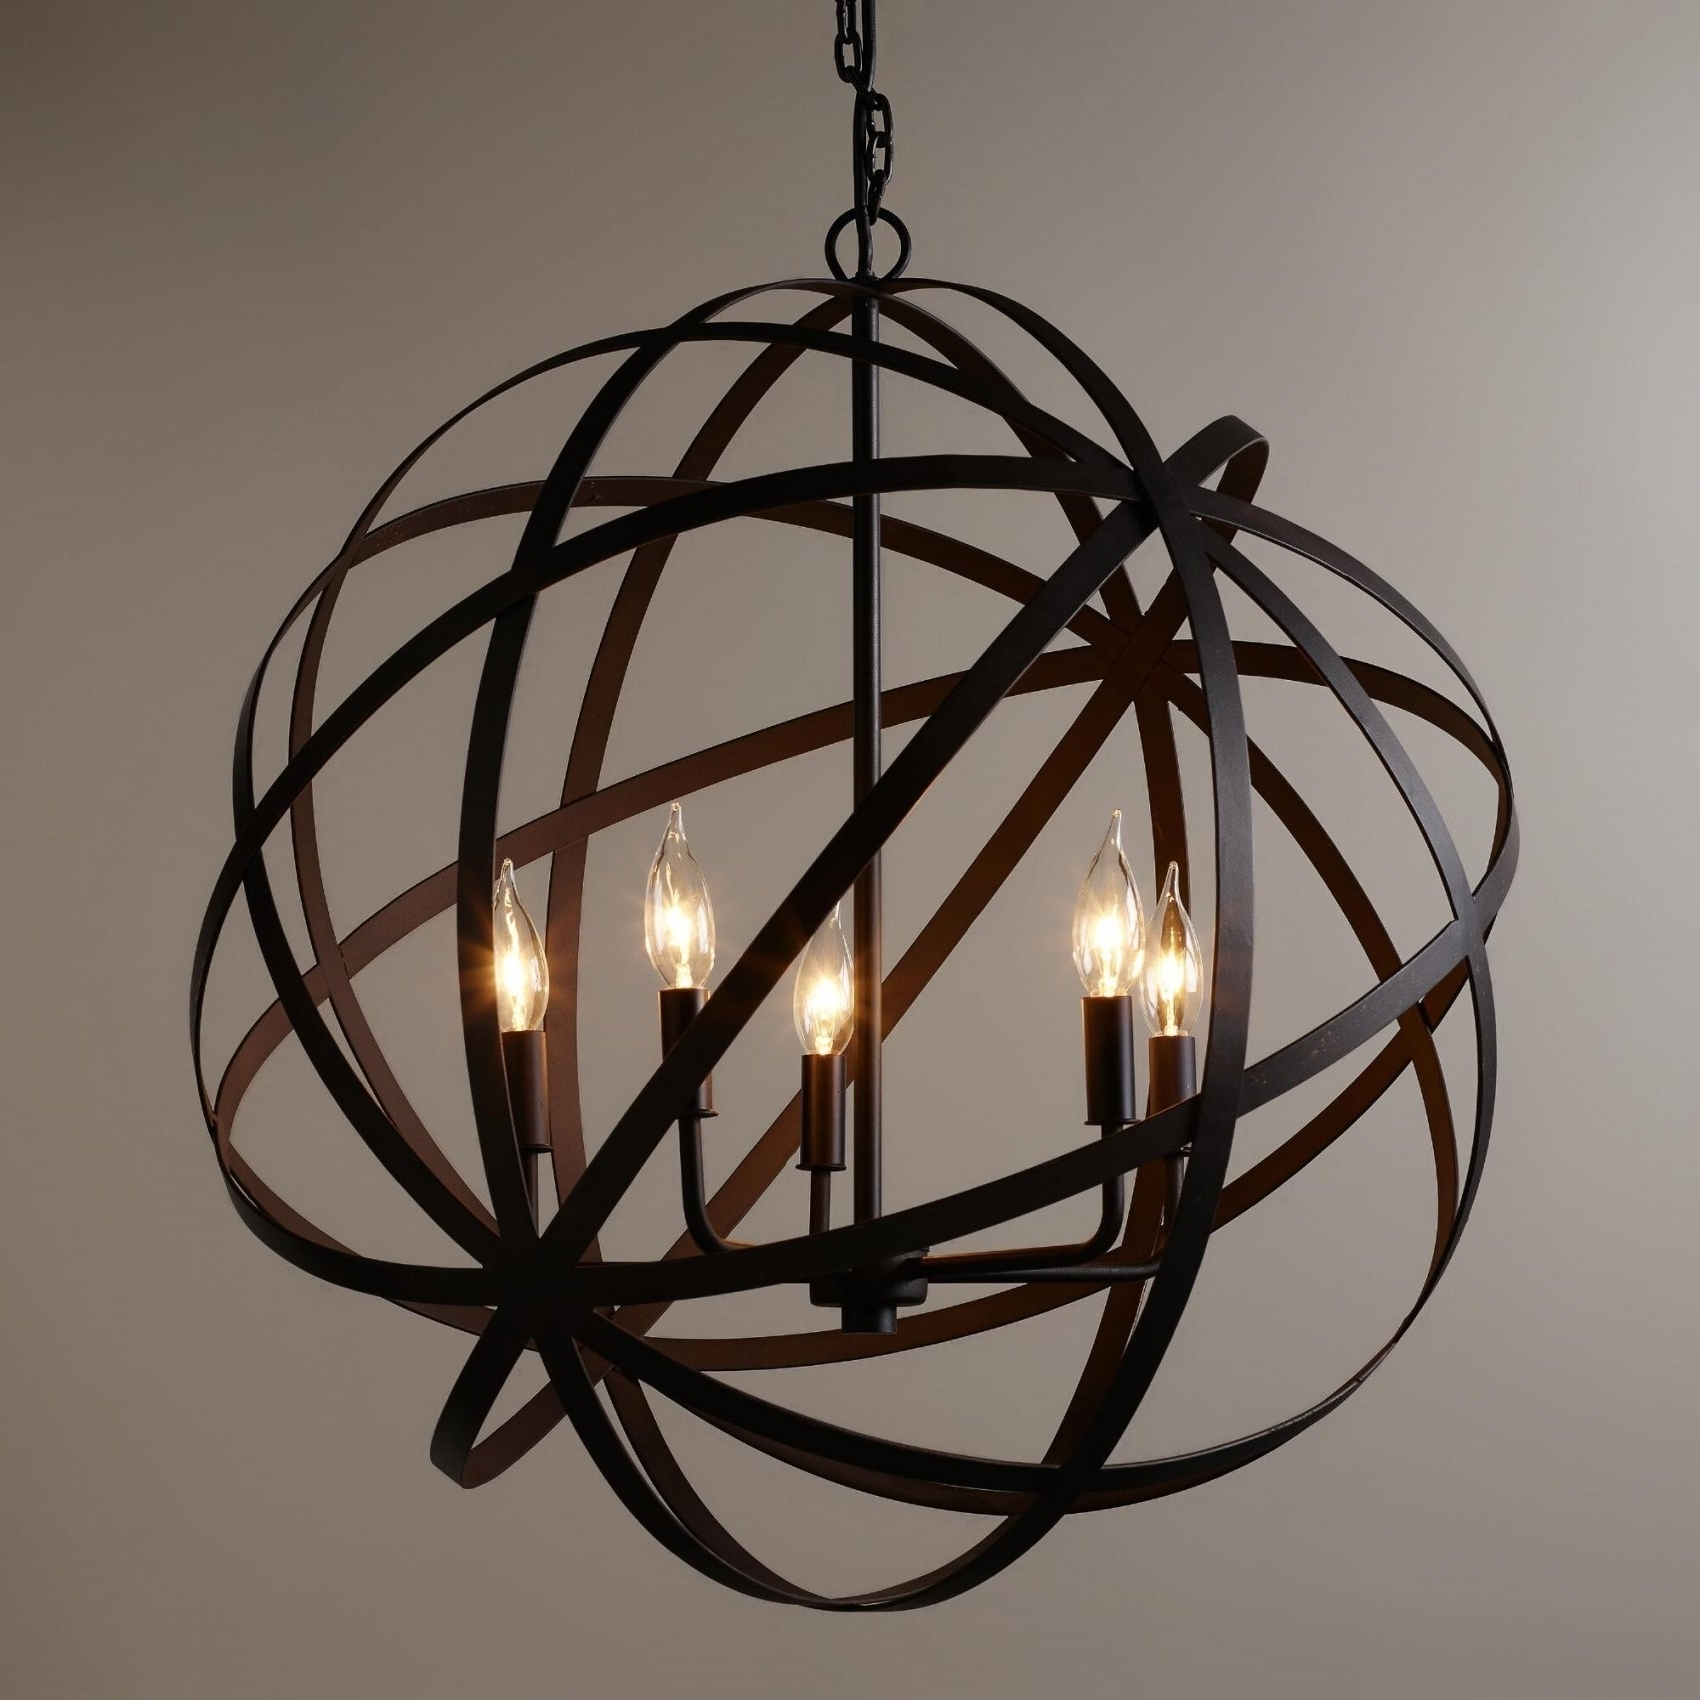 Rustic Large Chandeliers (View 14 of 15)